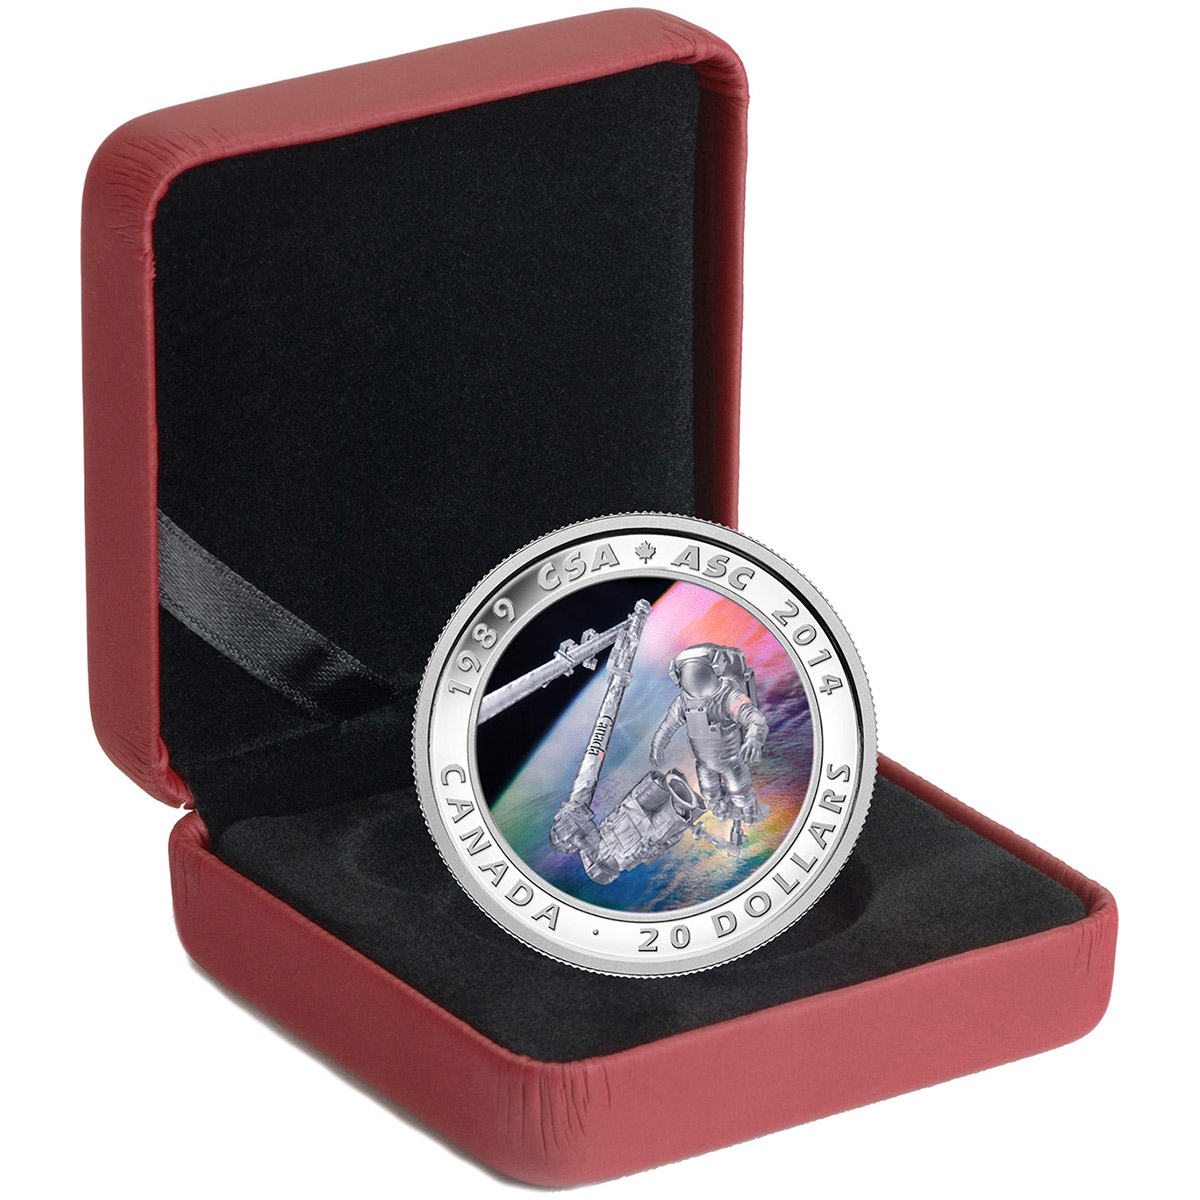 Return Gifts For 25th Wedding Anniversary: 2014 1 Oz Fine Silver Coin